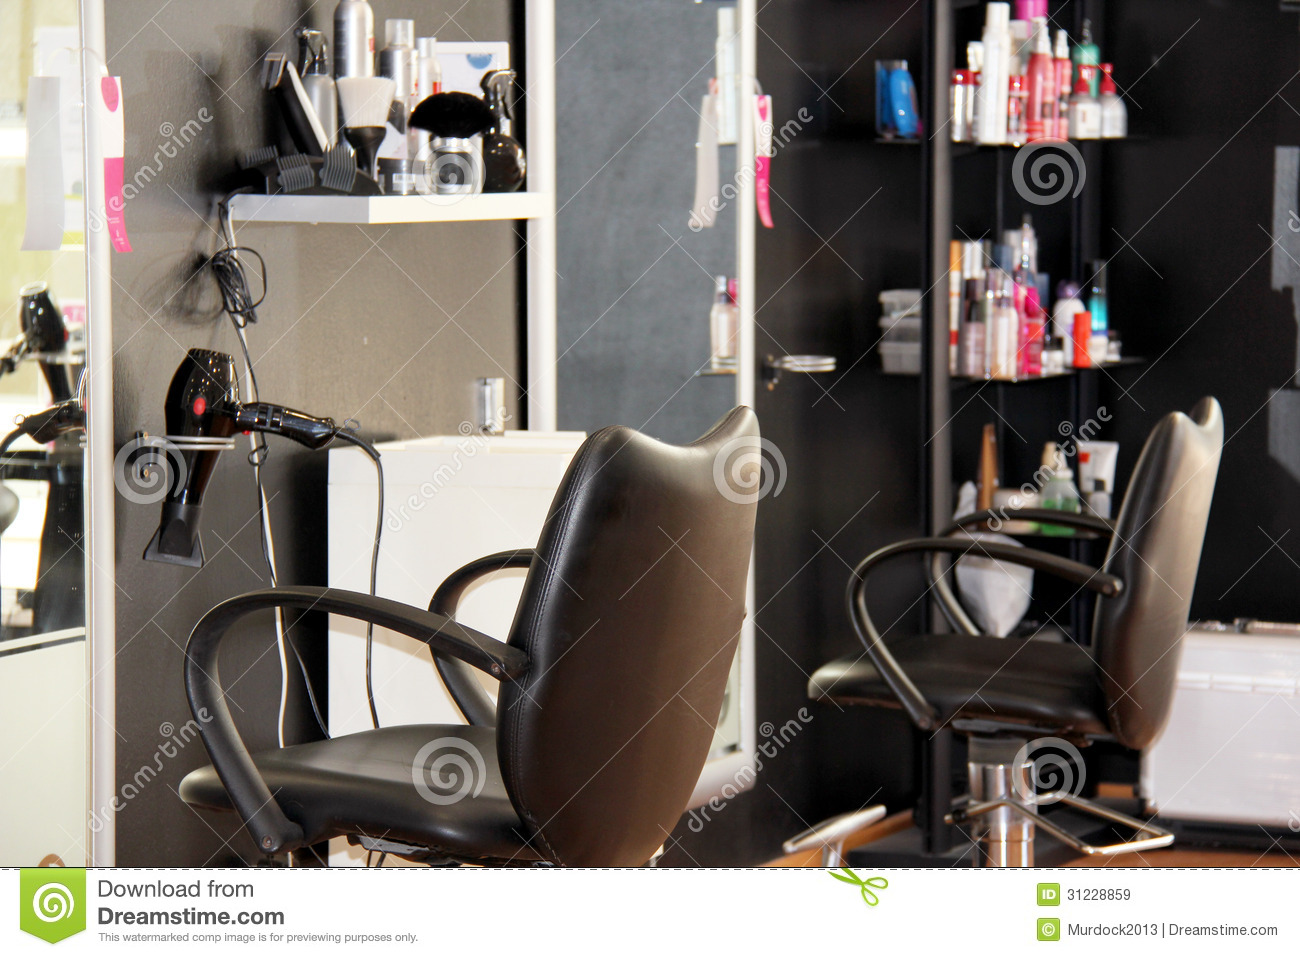 Modern hair salon royalty free stock images   image: 31228859